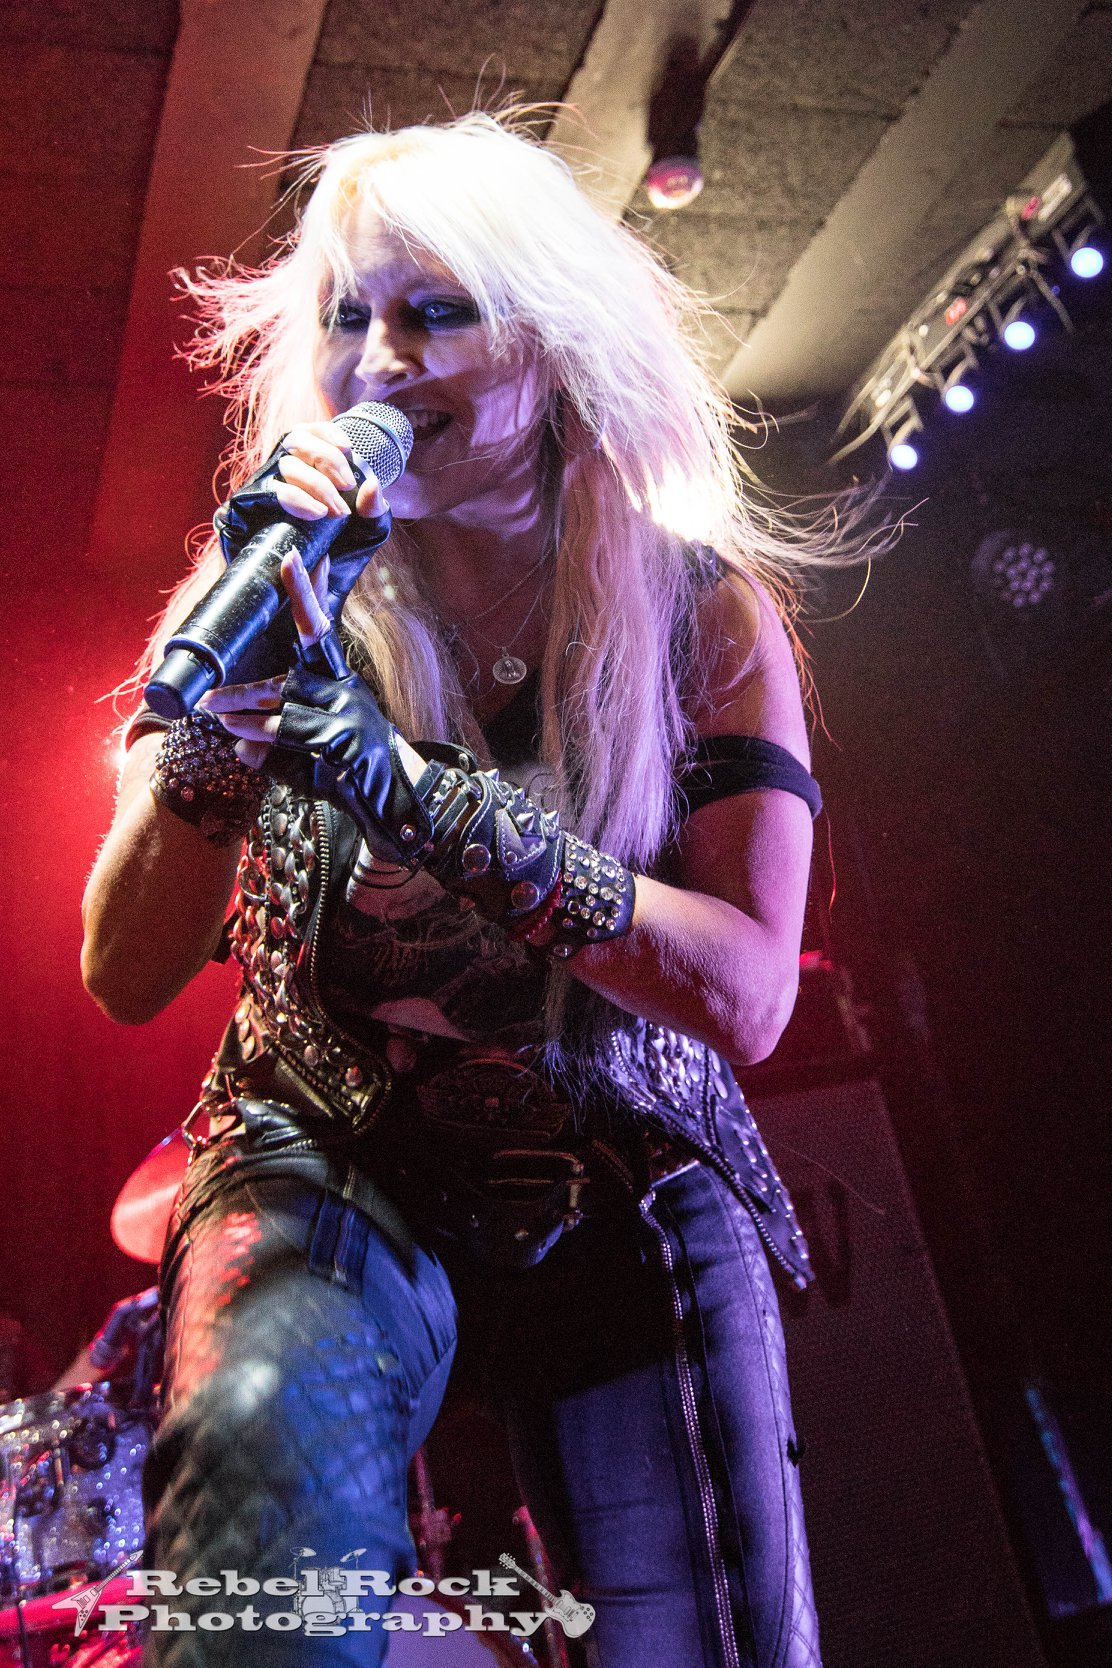 Doro at Rebellion in Manchester on March 12th 2019 ©Rock Rebel Photography